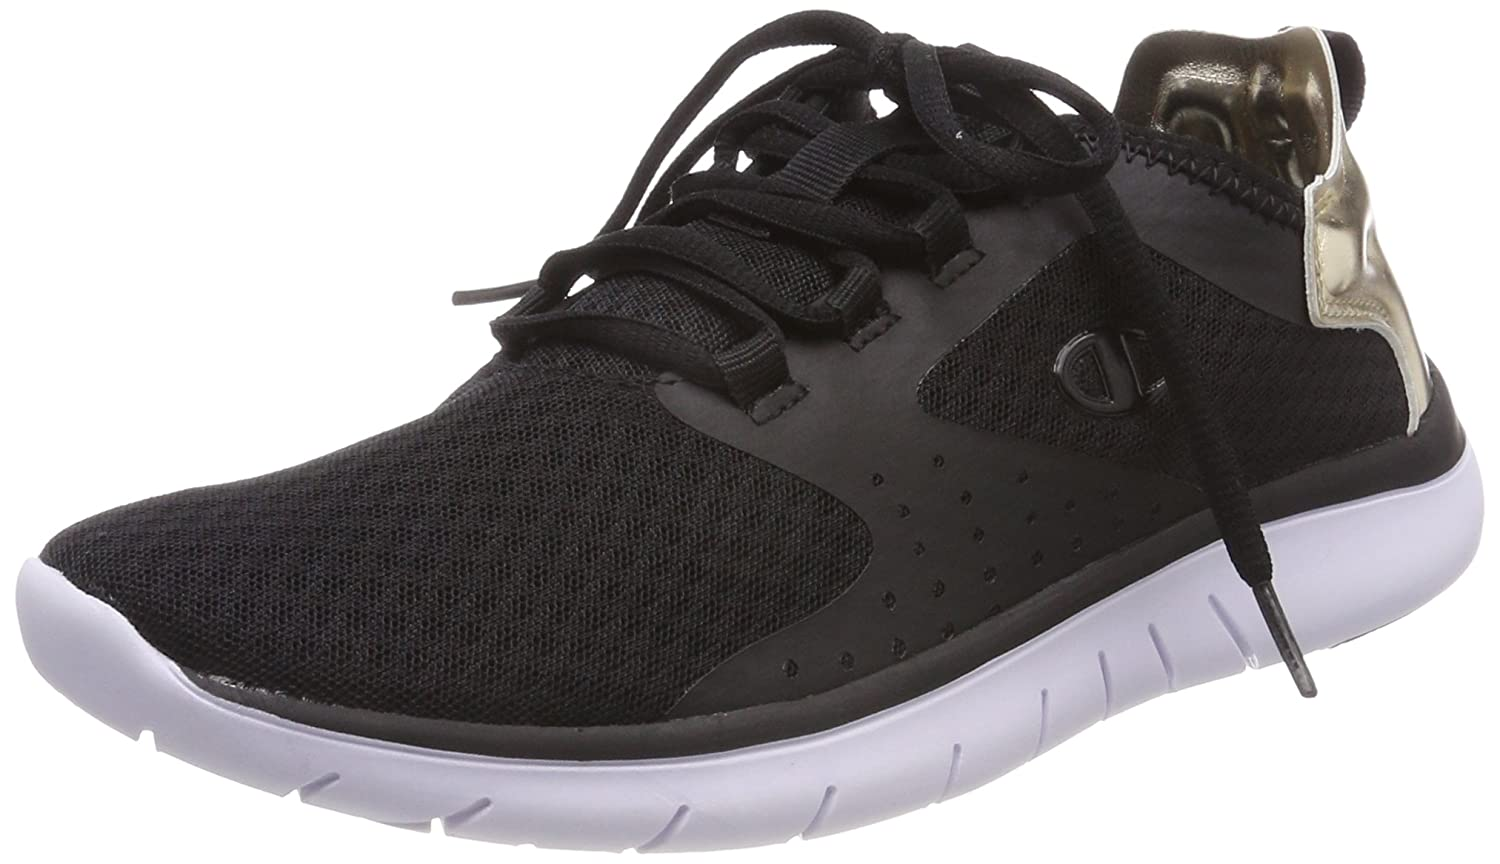 TALLA 36 EU. Champion Low Cut Shoe Alpha Cloud, Zapatillas de Running para Mujer